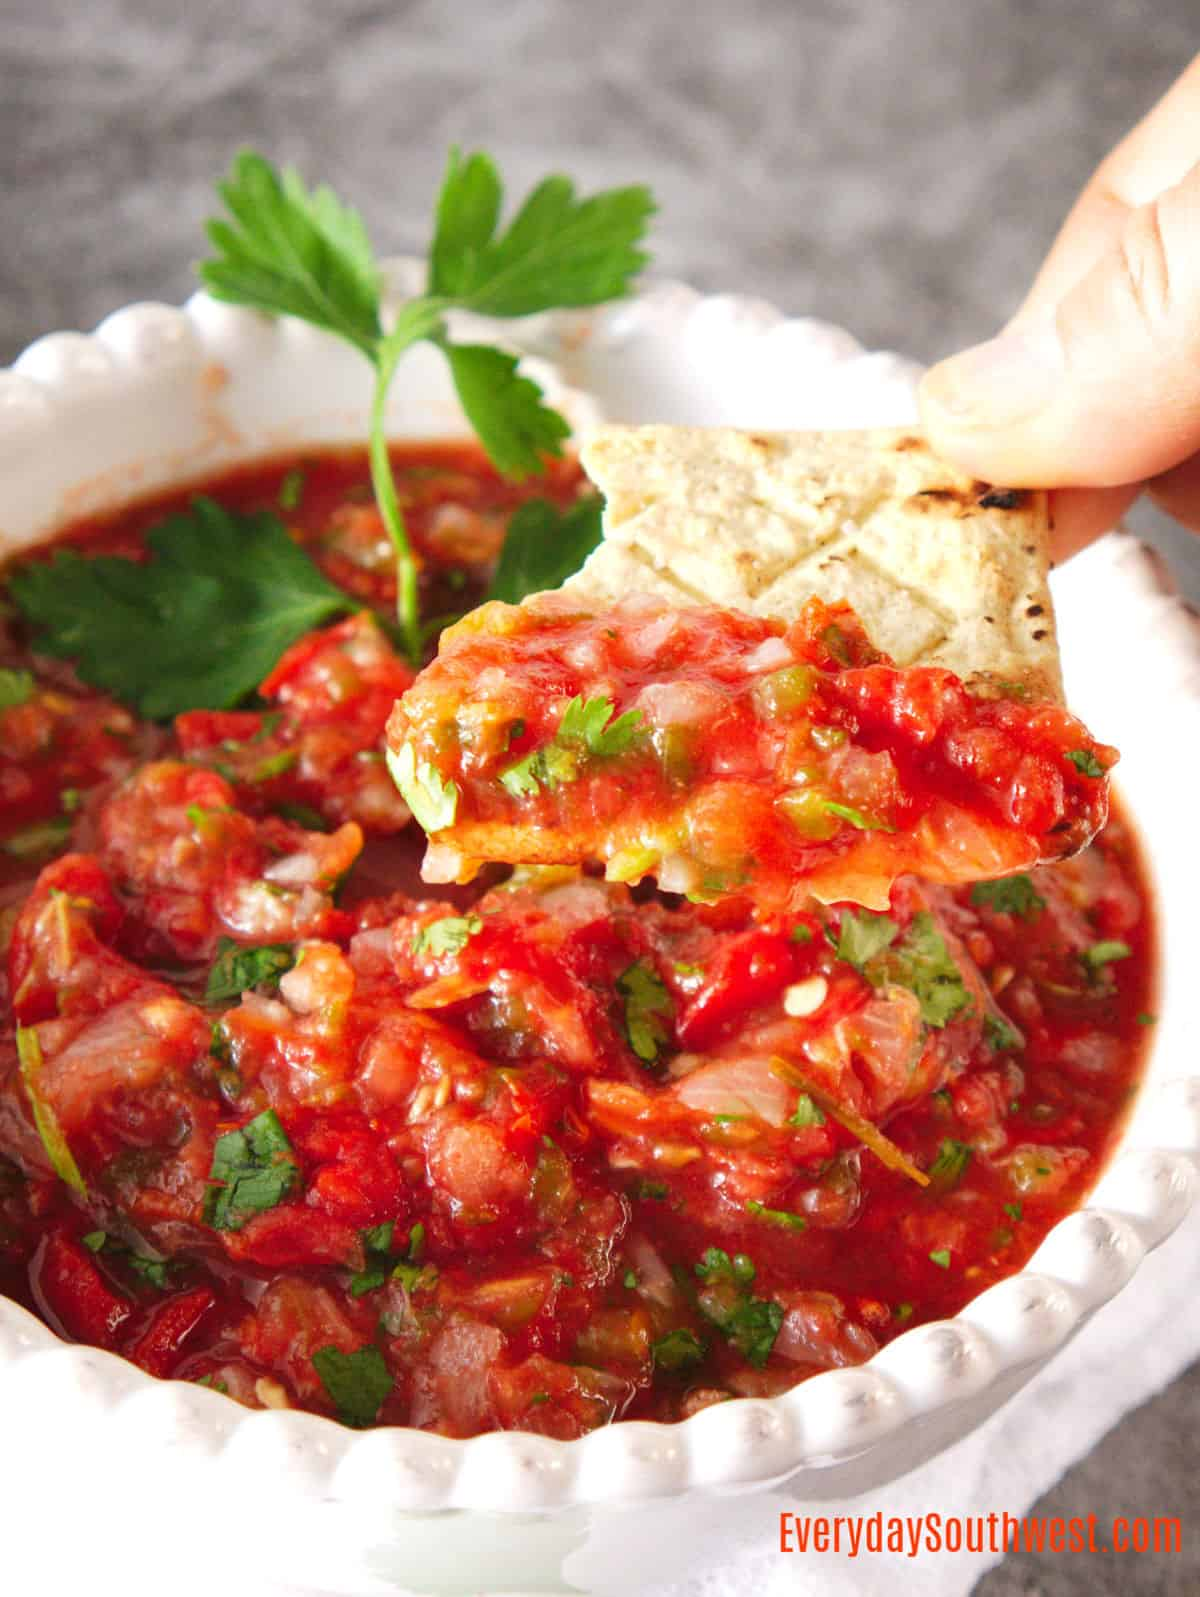 Homemade Restaurant Style Salsa in Your Air Fryer